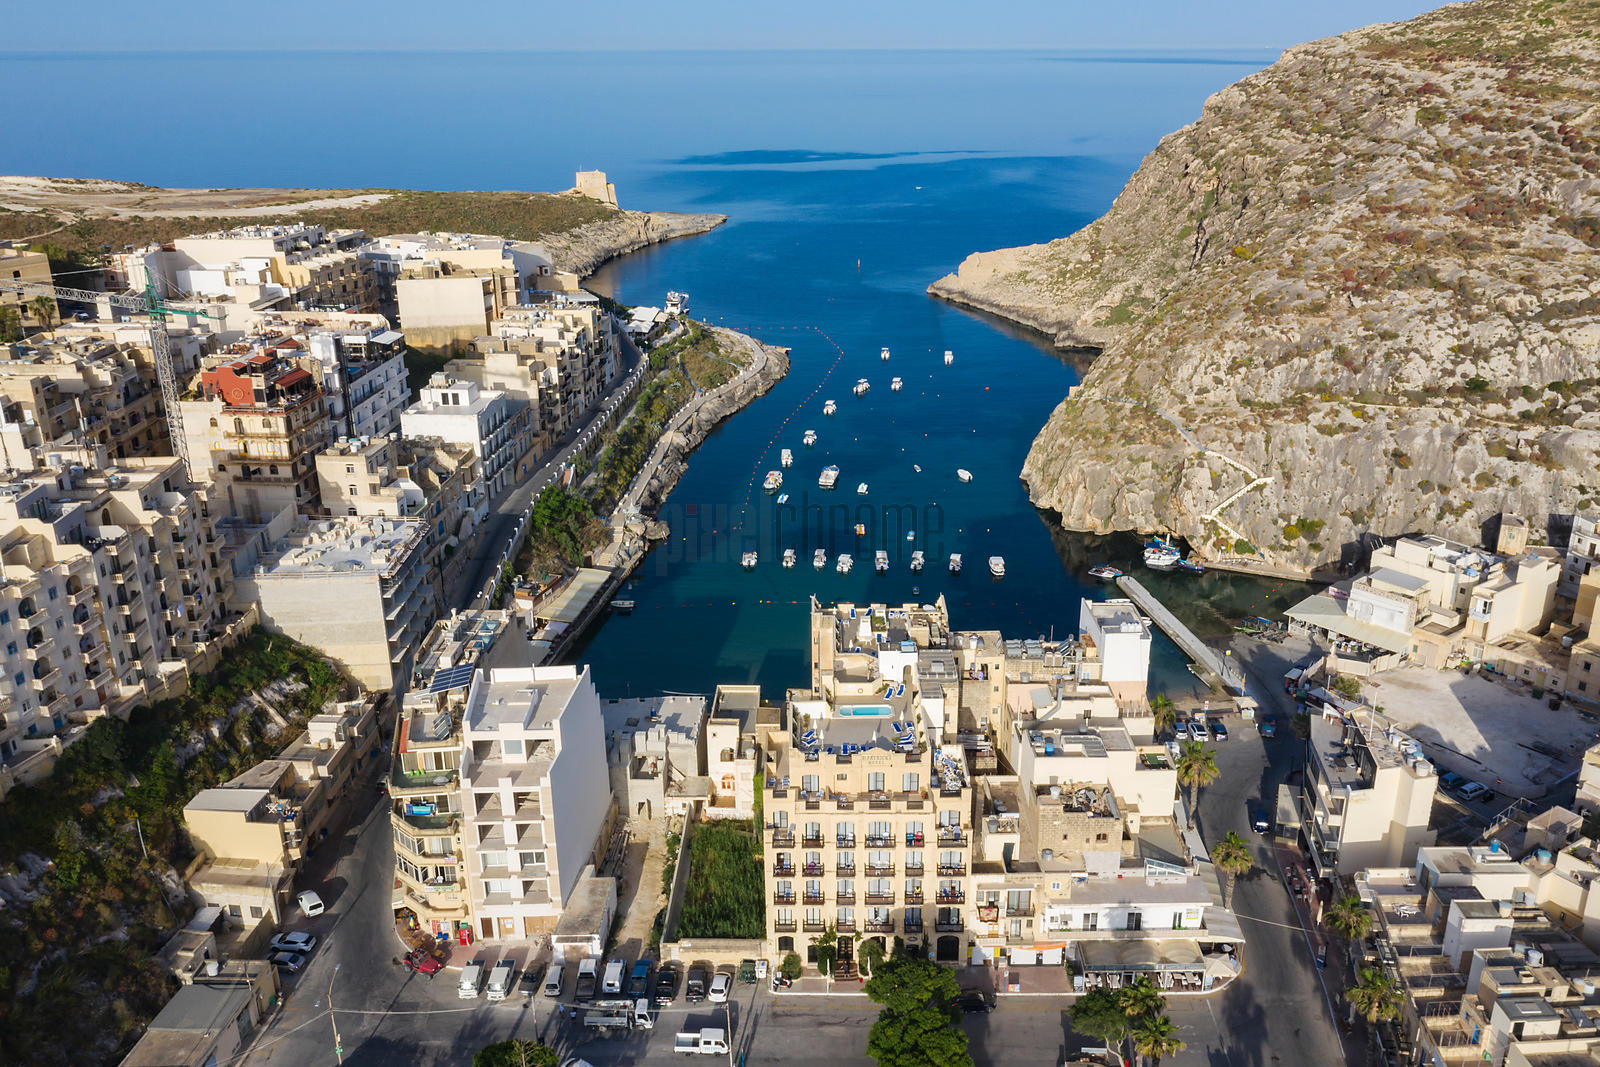 Aerial View of Xlendi Bay and the Town of Xlendi